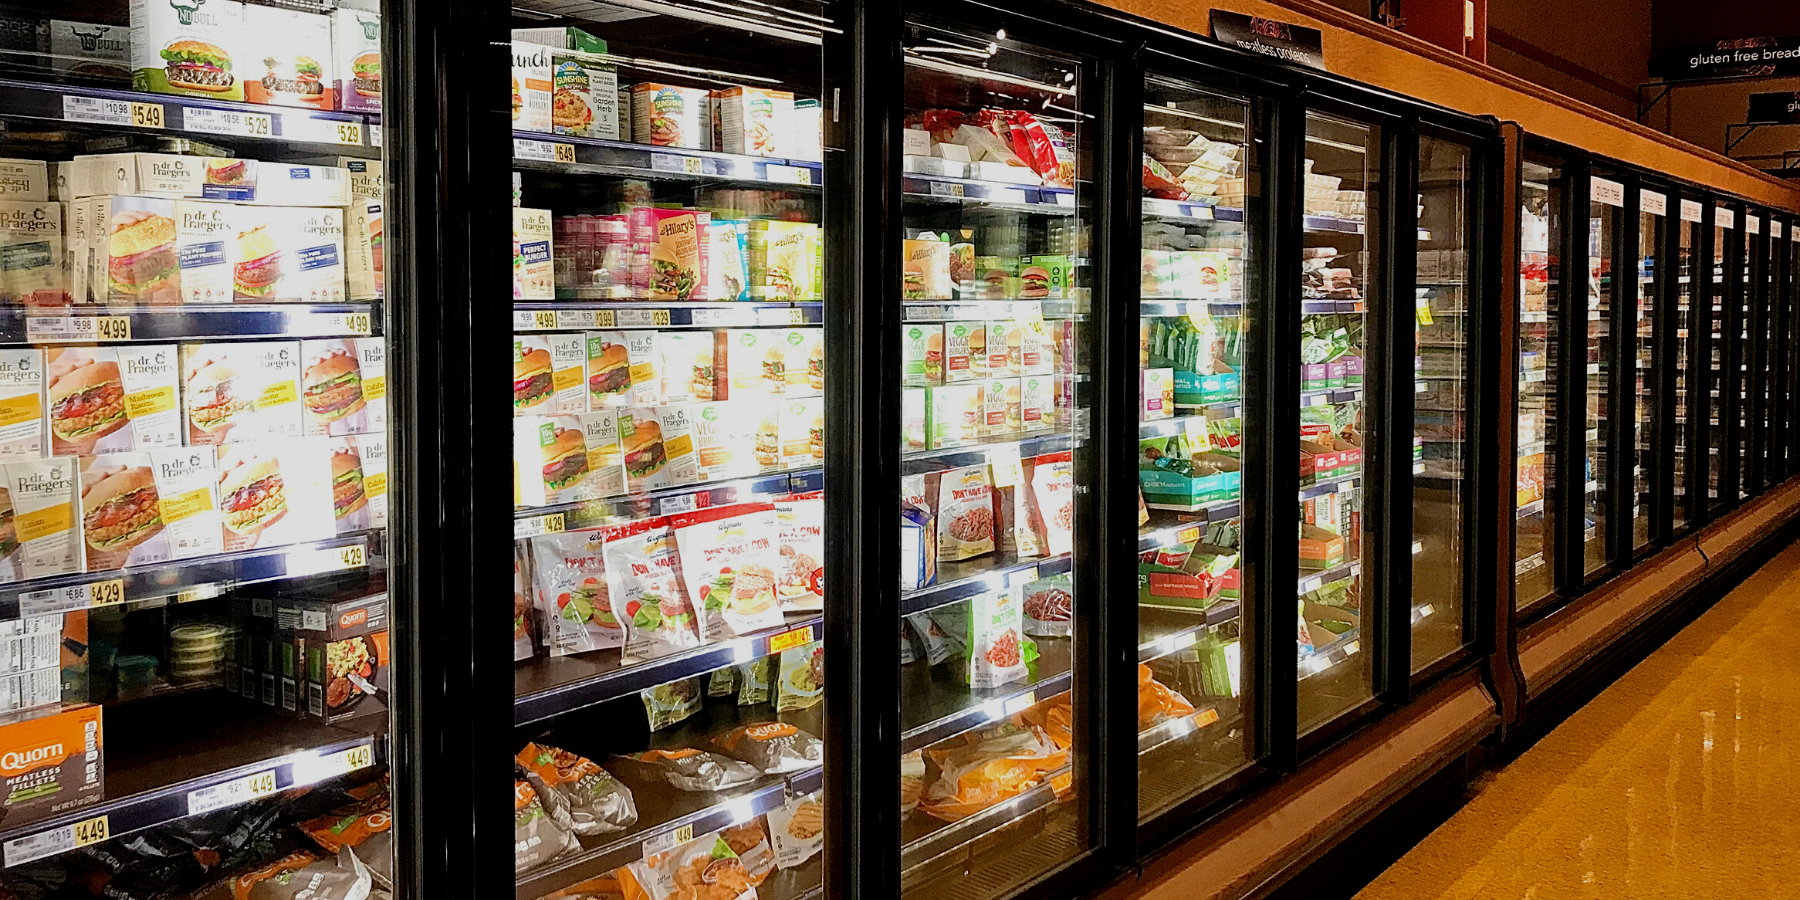 GFI's Plant-Based Market Overview